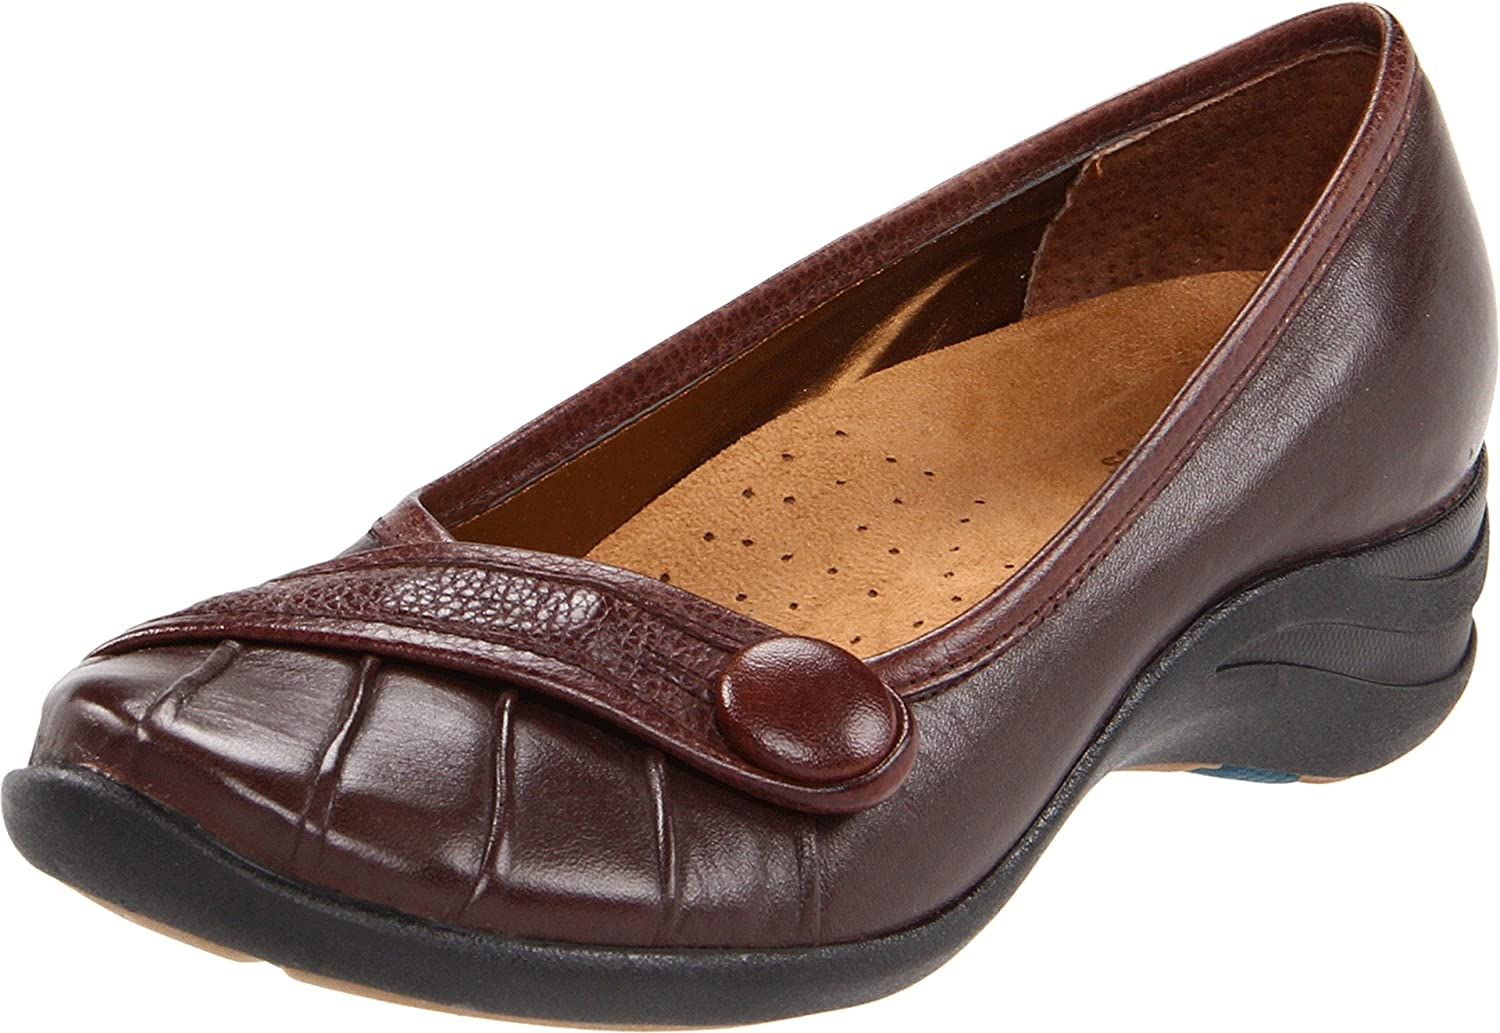 Hush Puppies Women's Sonnet Slip On